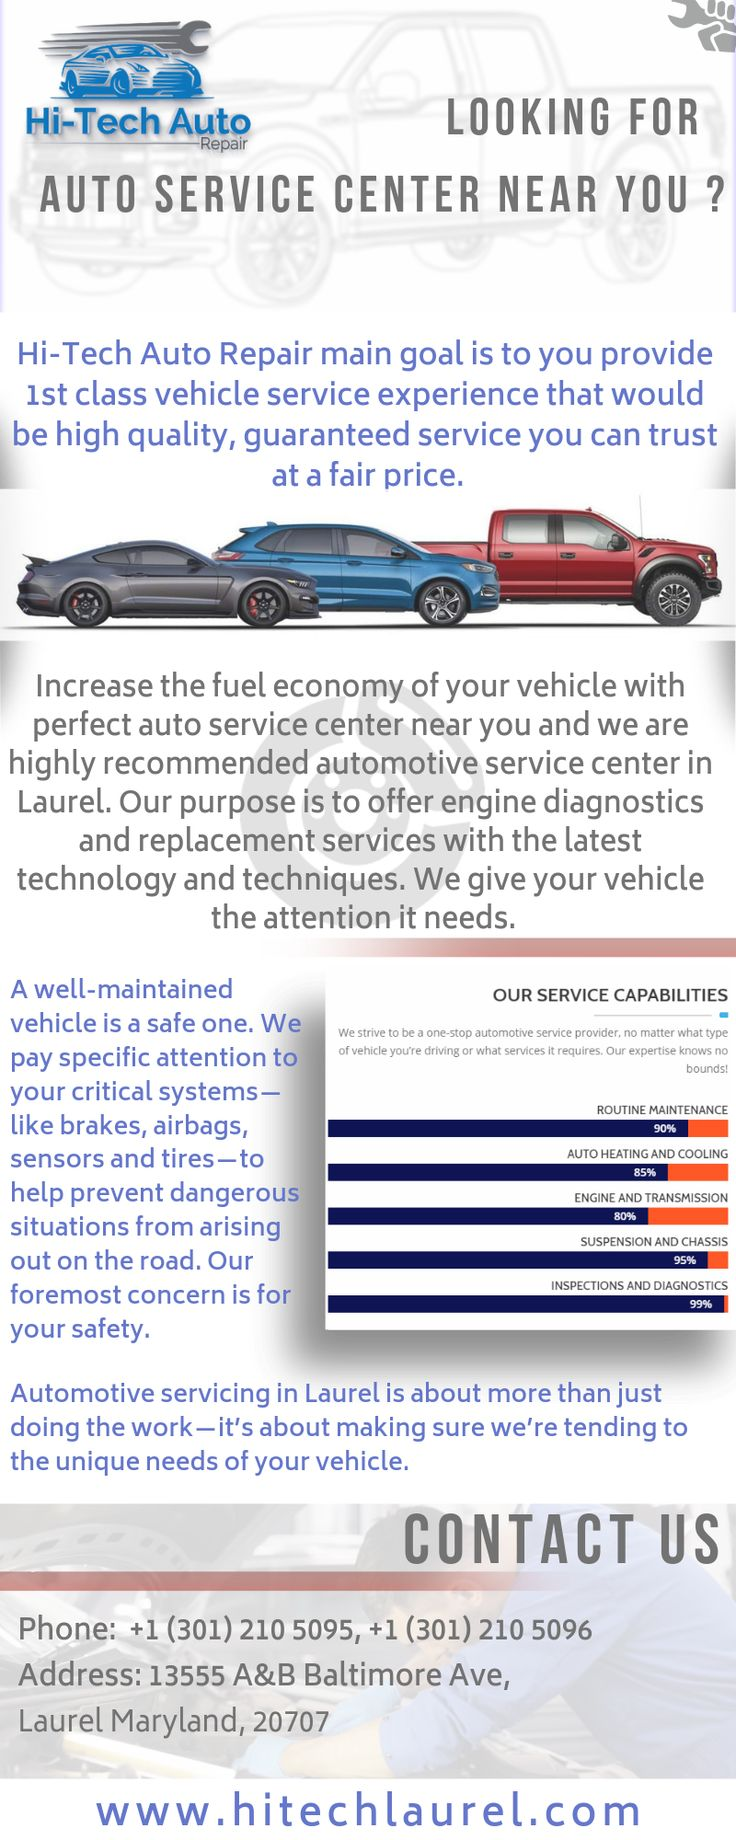 Increase the fuel economy of your vehicle by the perfect